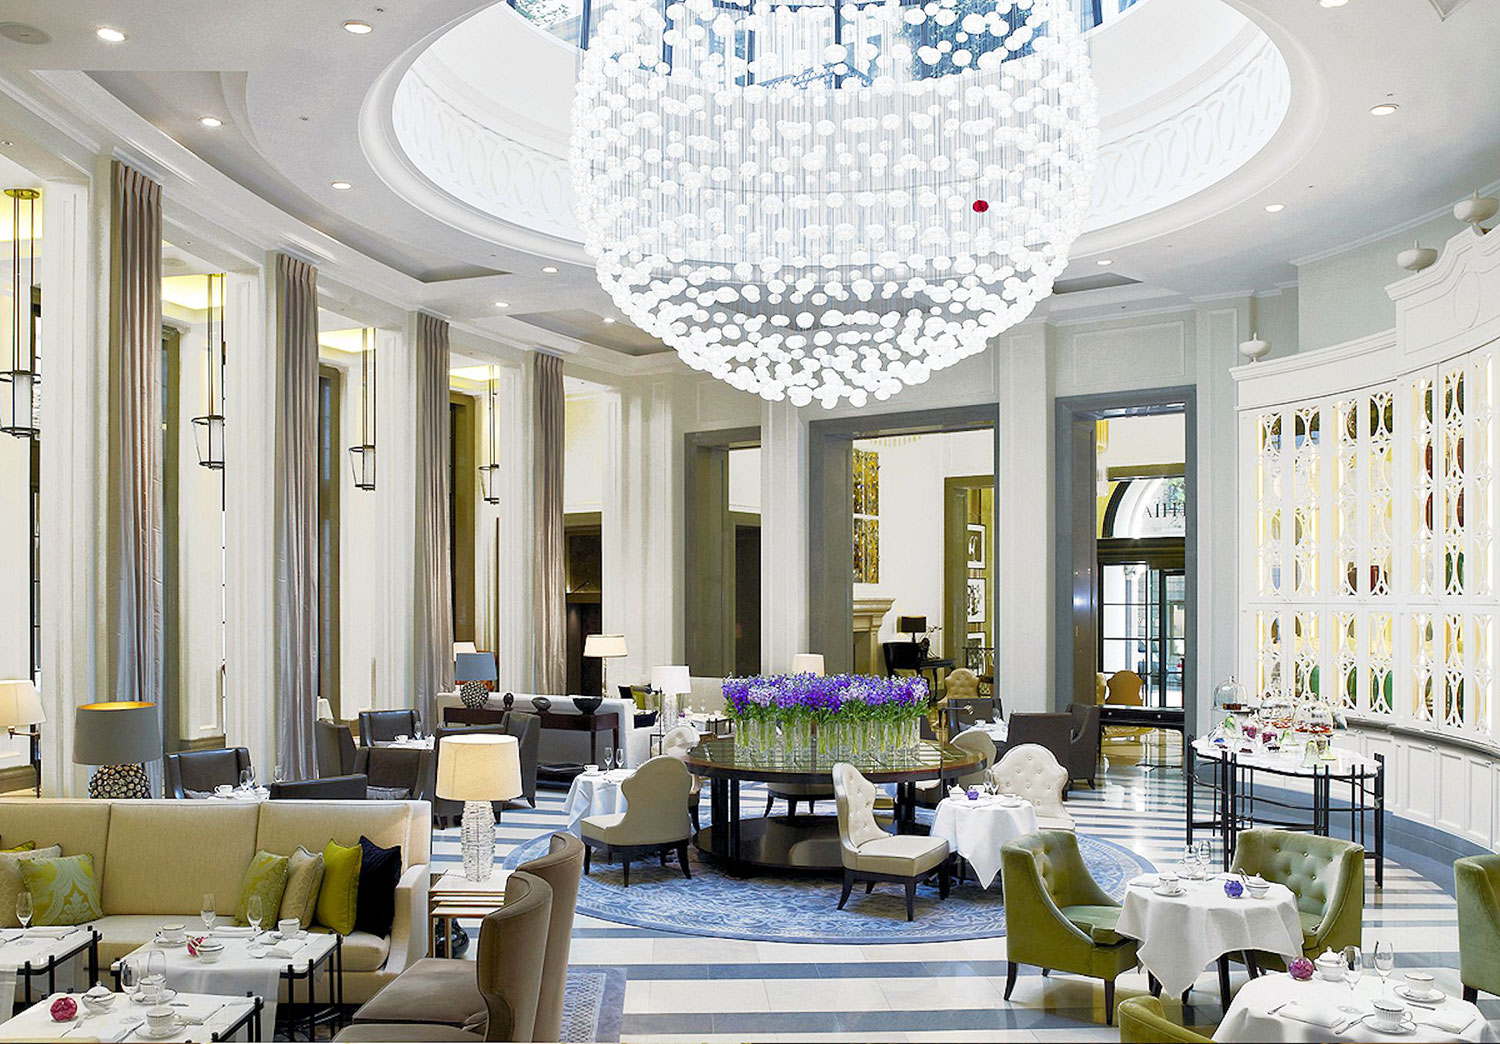 Corinthia hotel london private residence for sale at 11 for Hotel design london